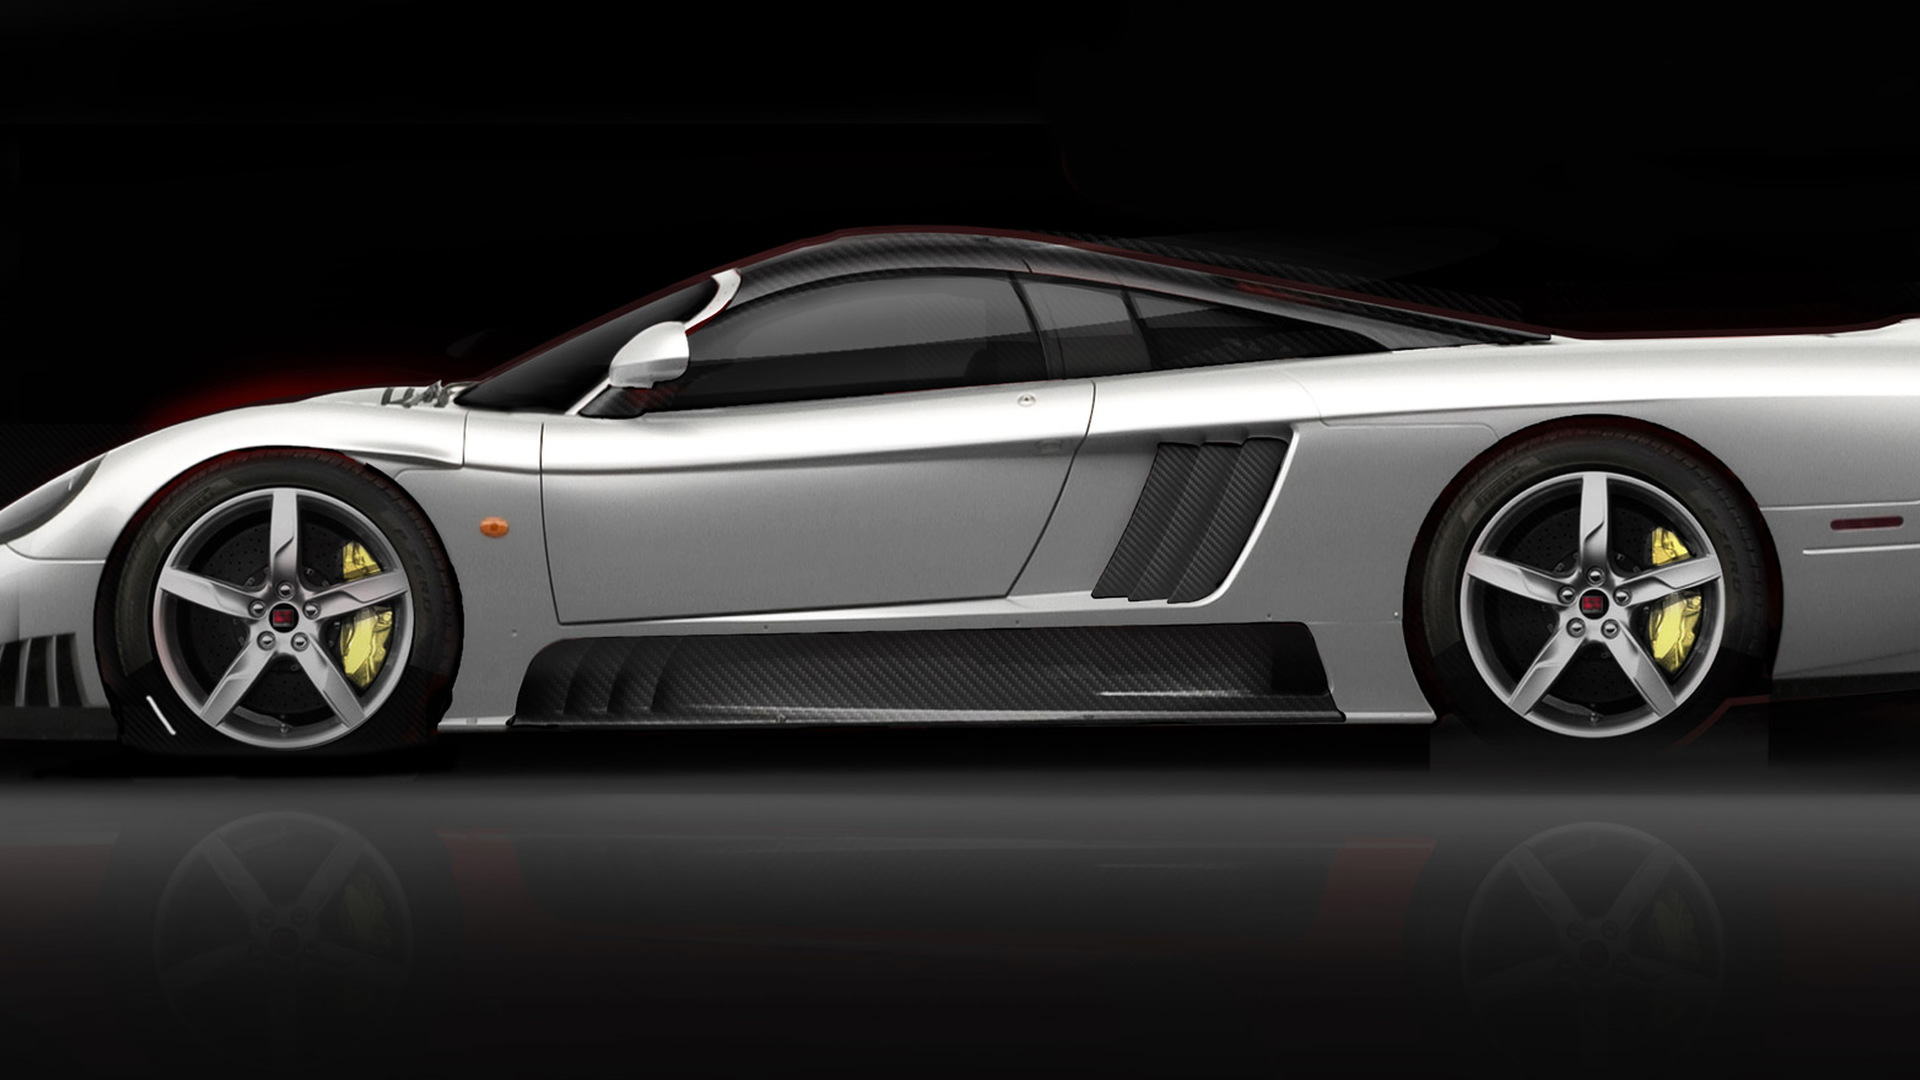 Saleen S7 For Sale >> Saleen S7 LM revealed with 1,300 horsepower, $1M price tag